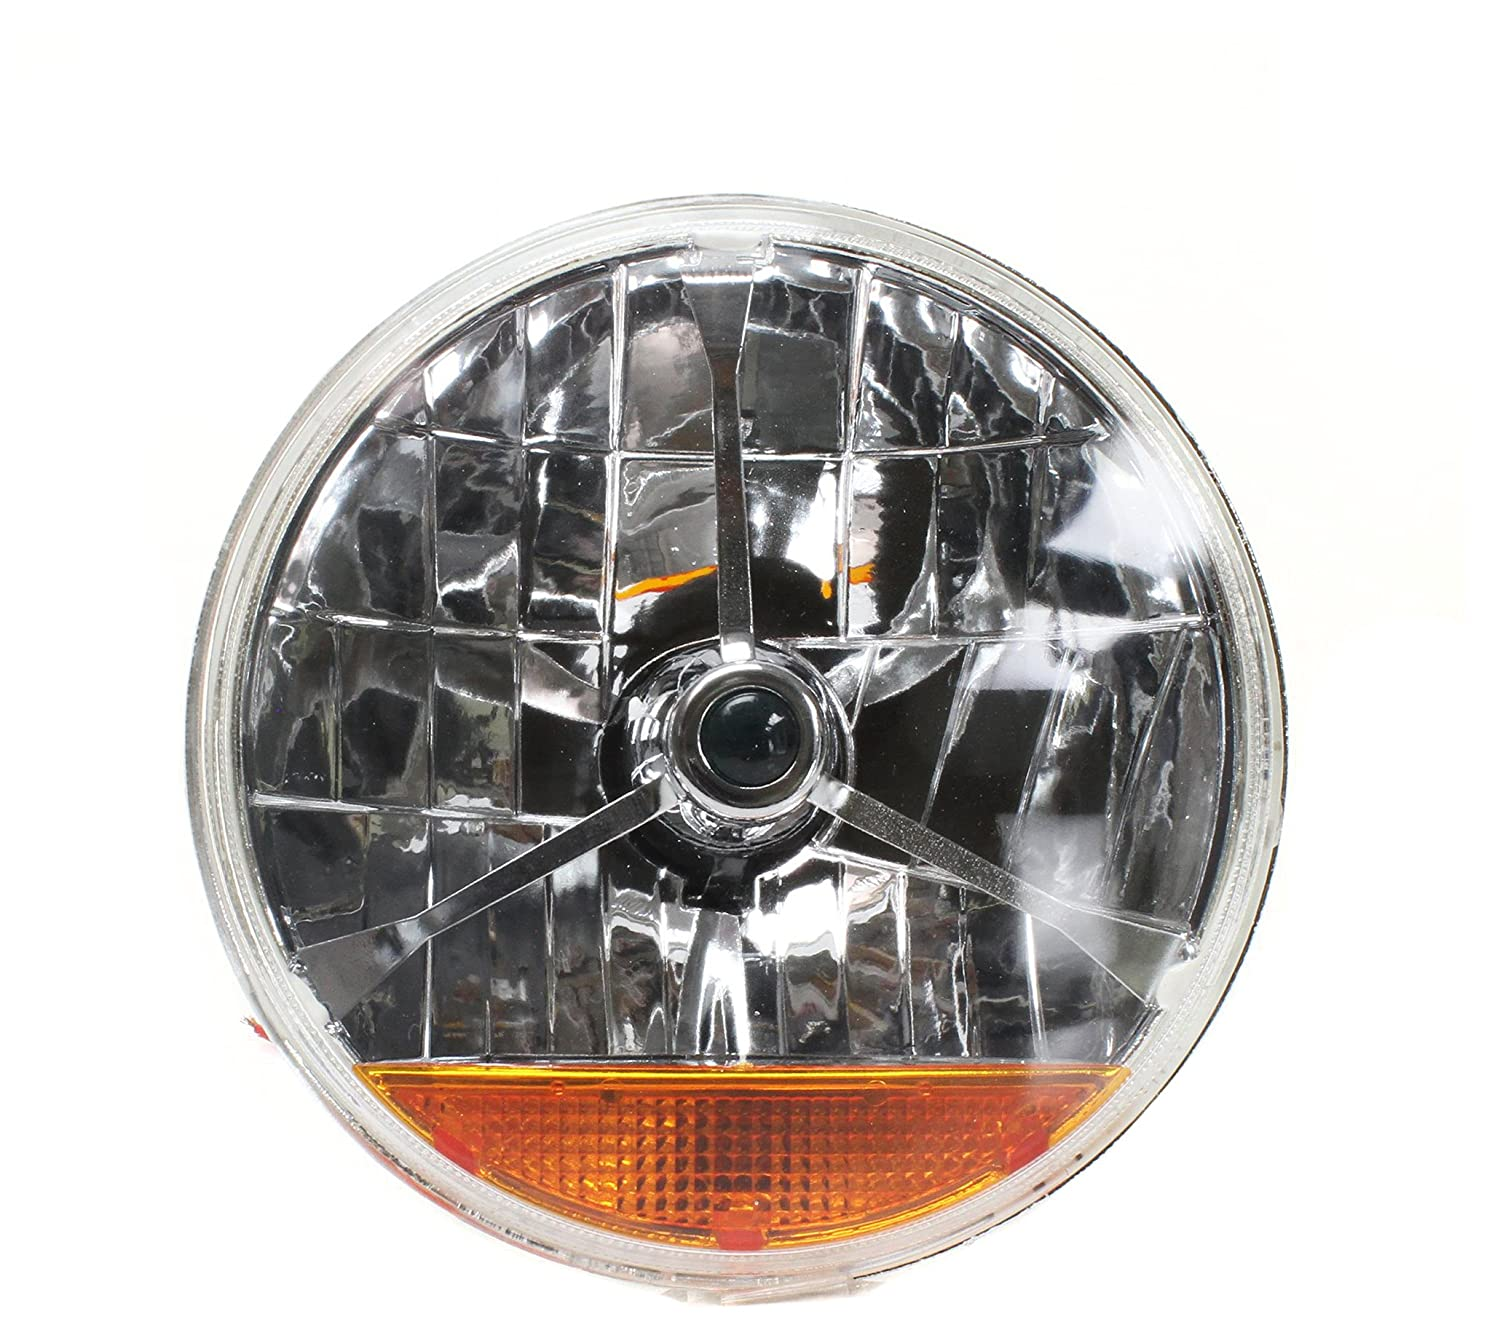 1 Pack AutoLoc Power Accessories 324101 Tri-Bar 7 Halogen Lens Assembly With Amber Turn Signal Pair